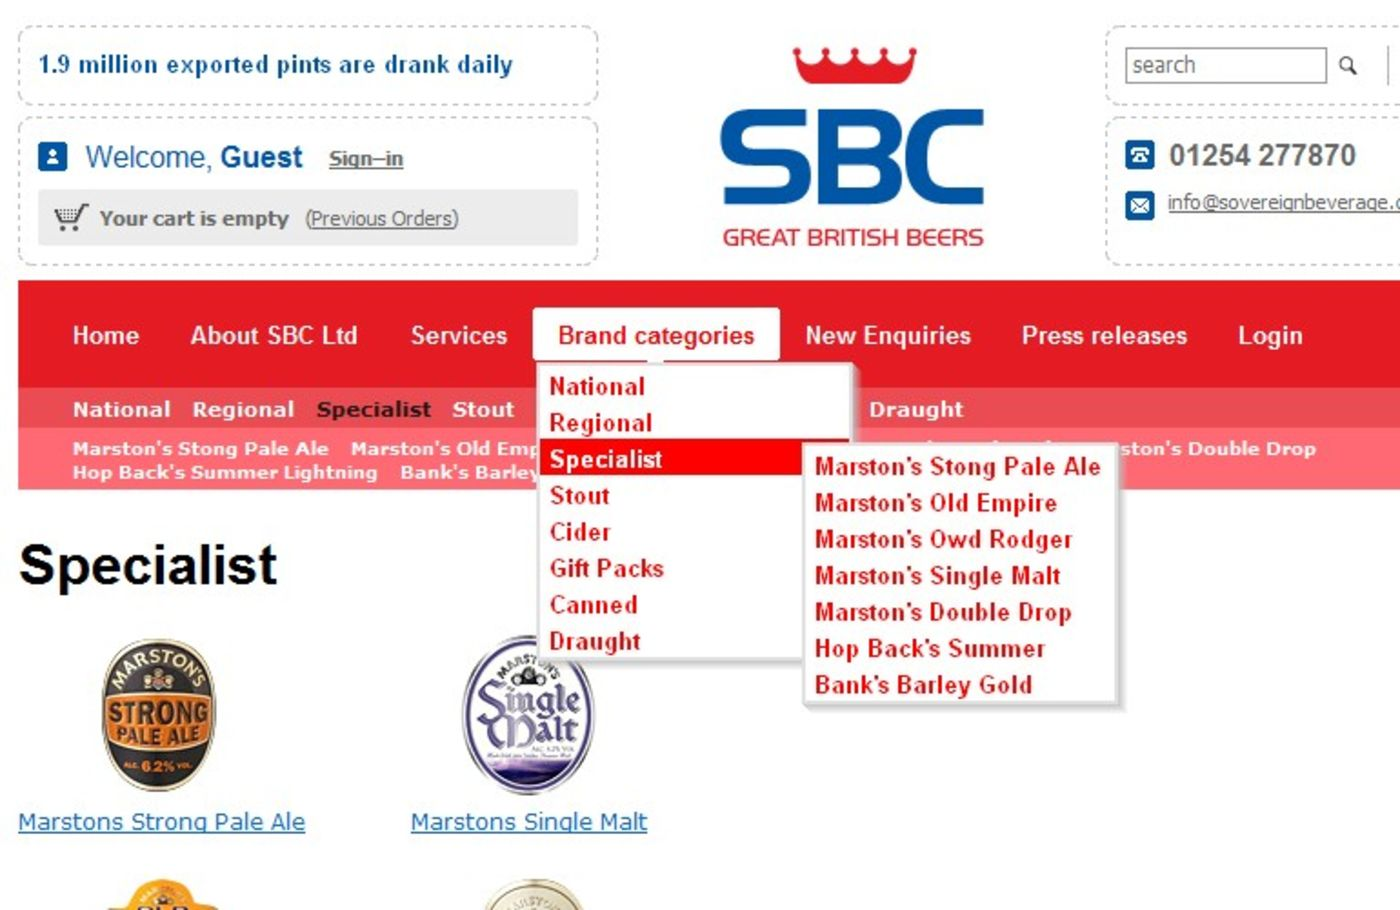 Sovereign Beverage Company Brand categories